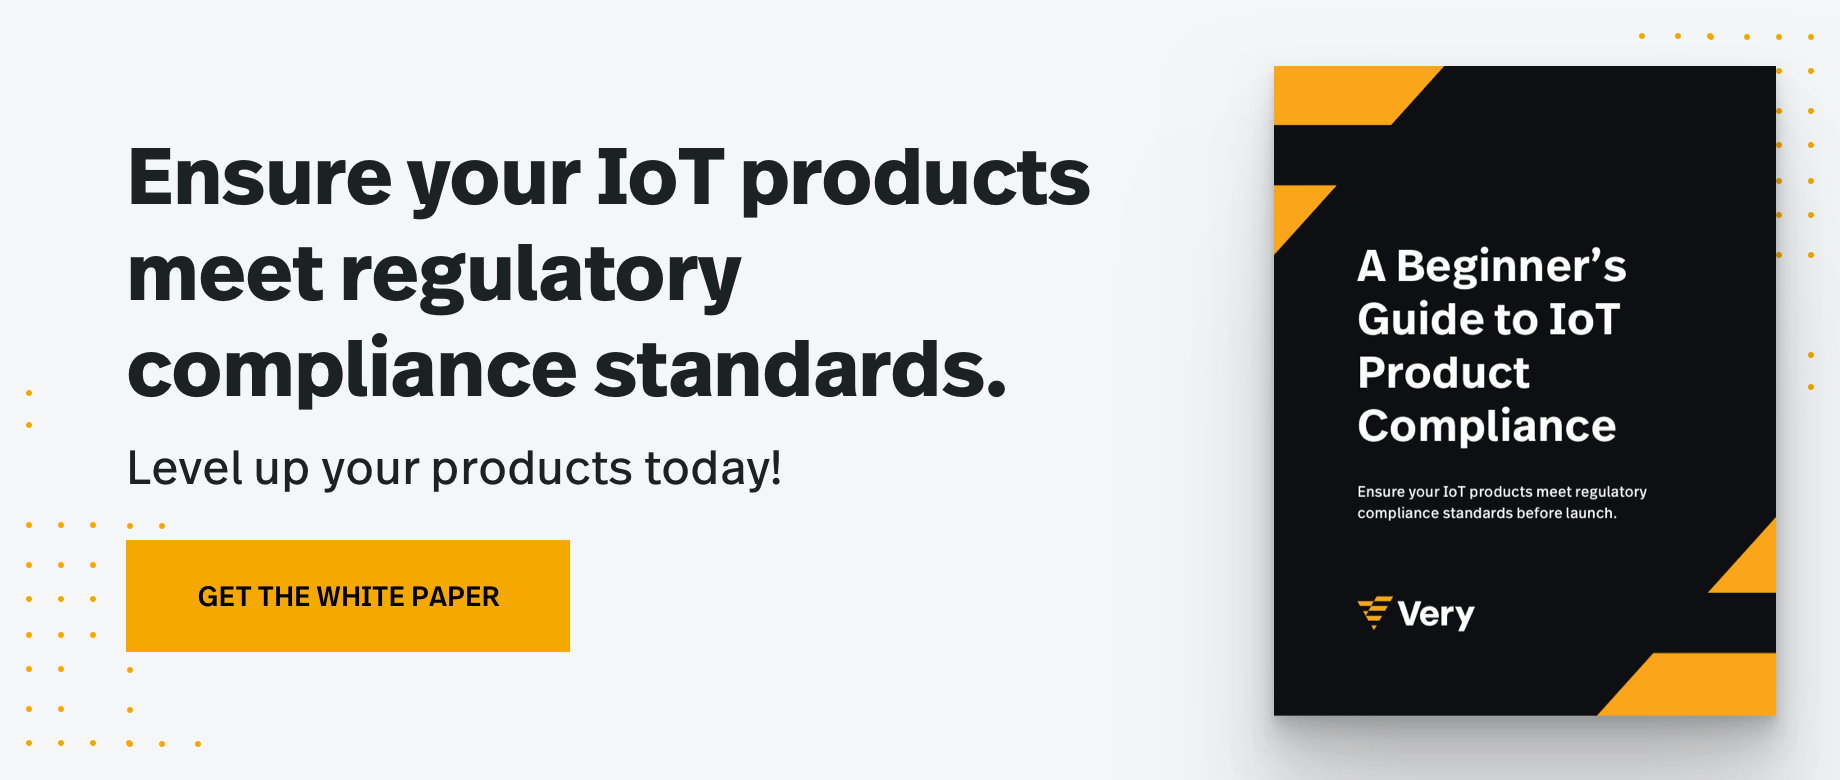 iot compliance guide